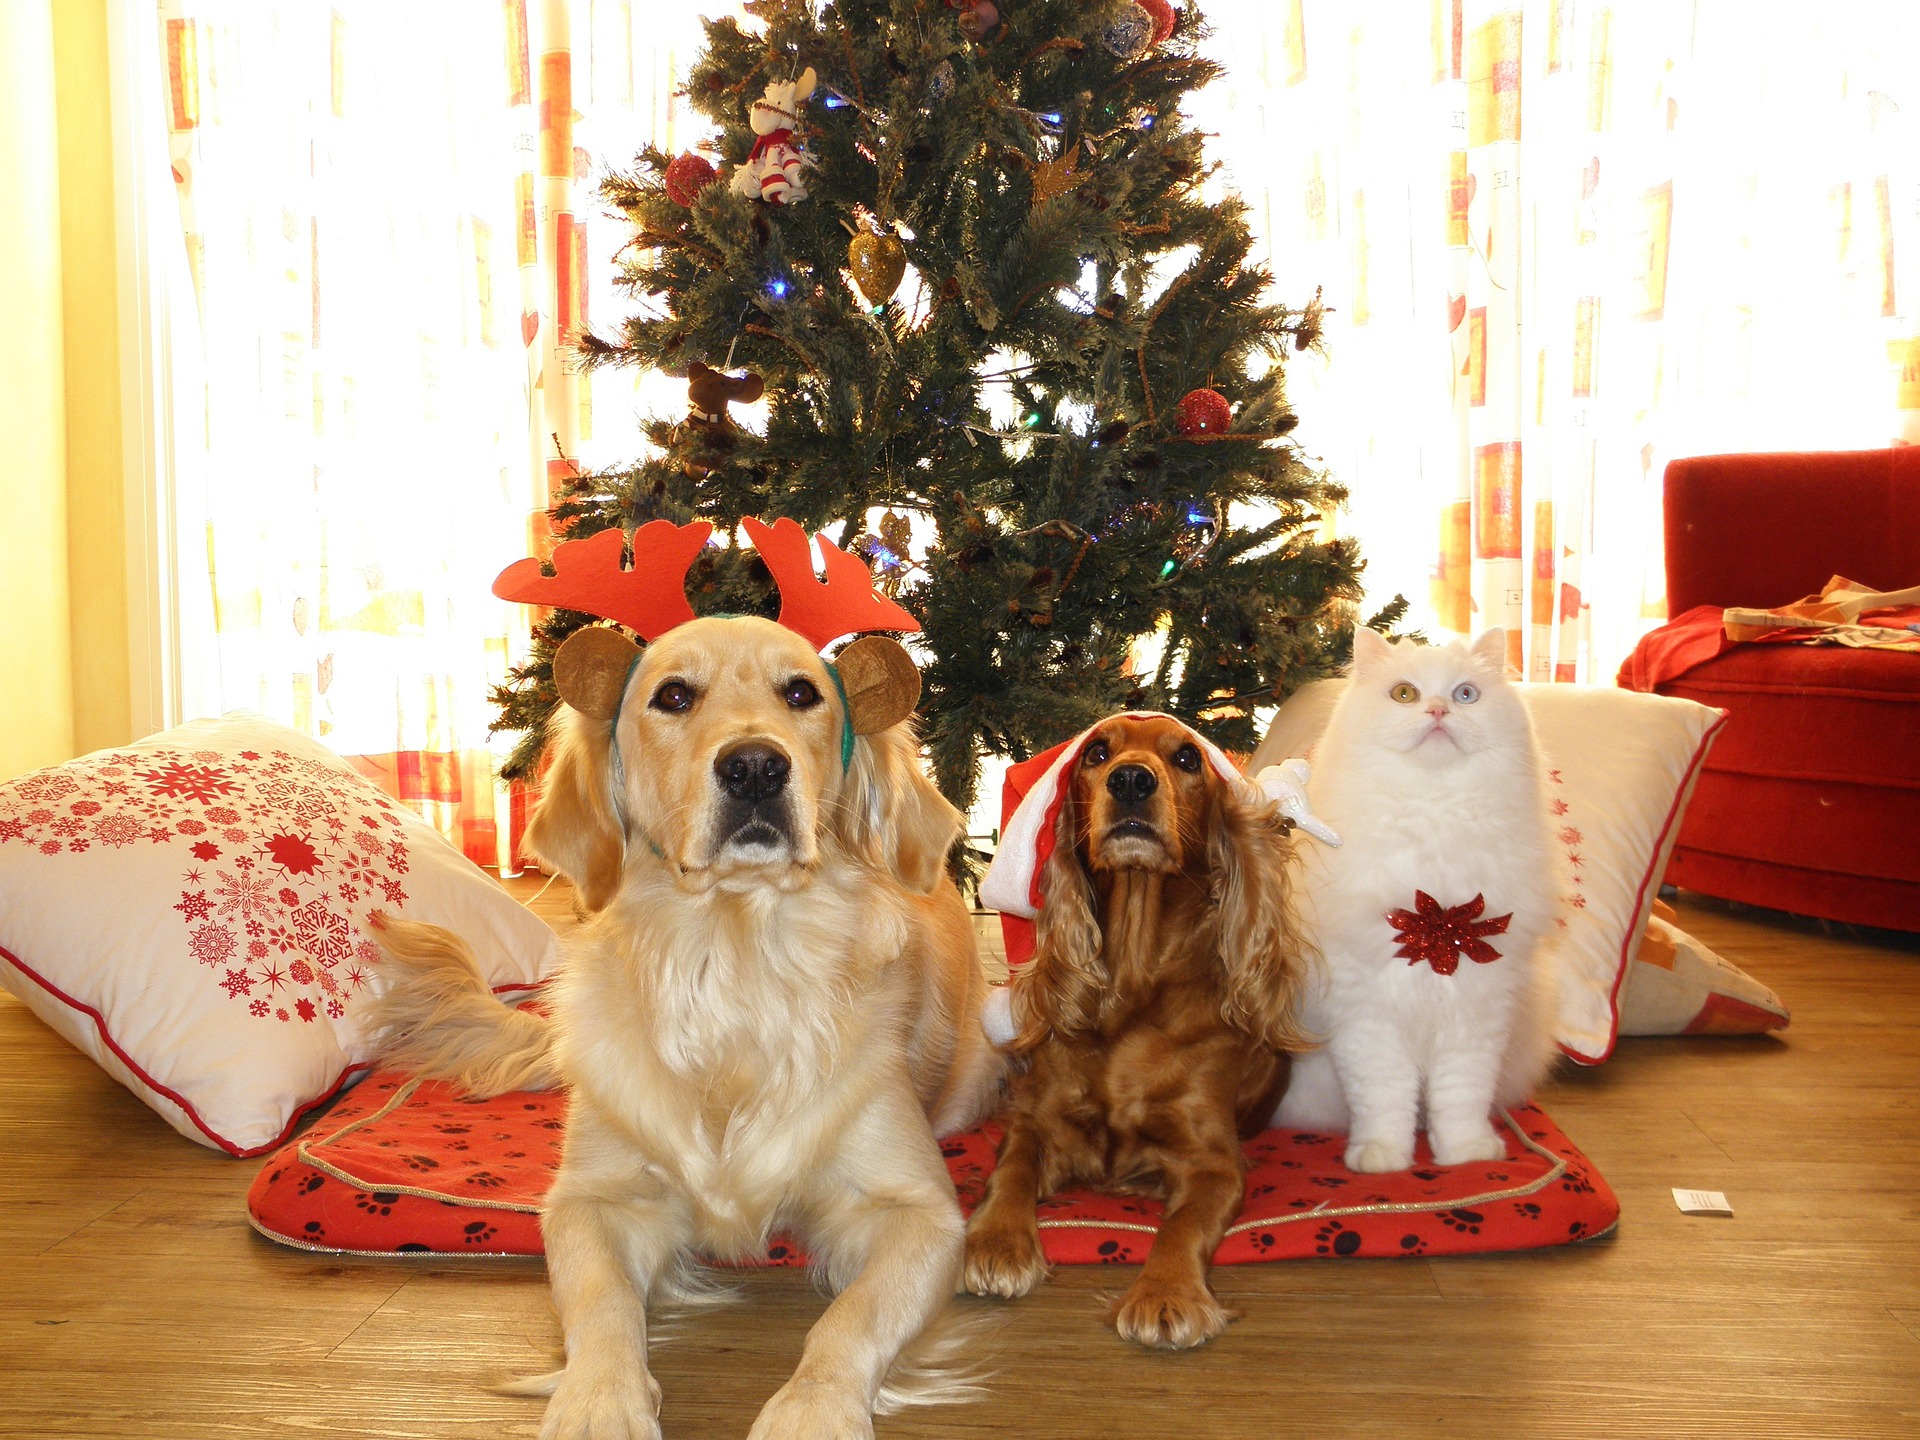 Taking Care of Your Pets Over the Bustling Holiday Season